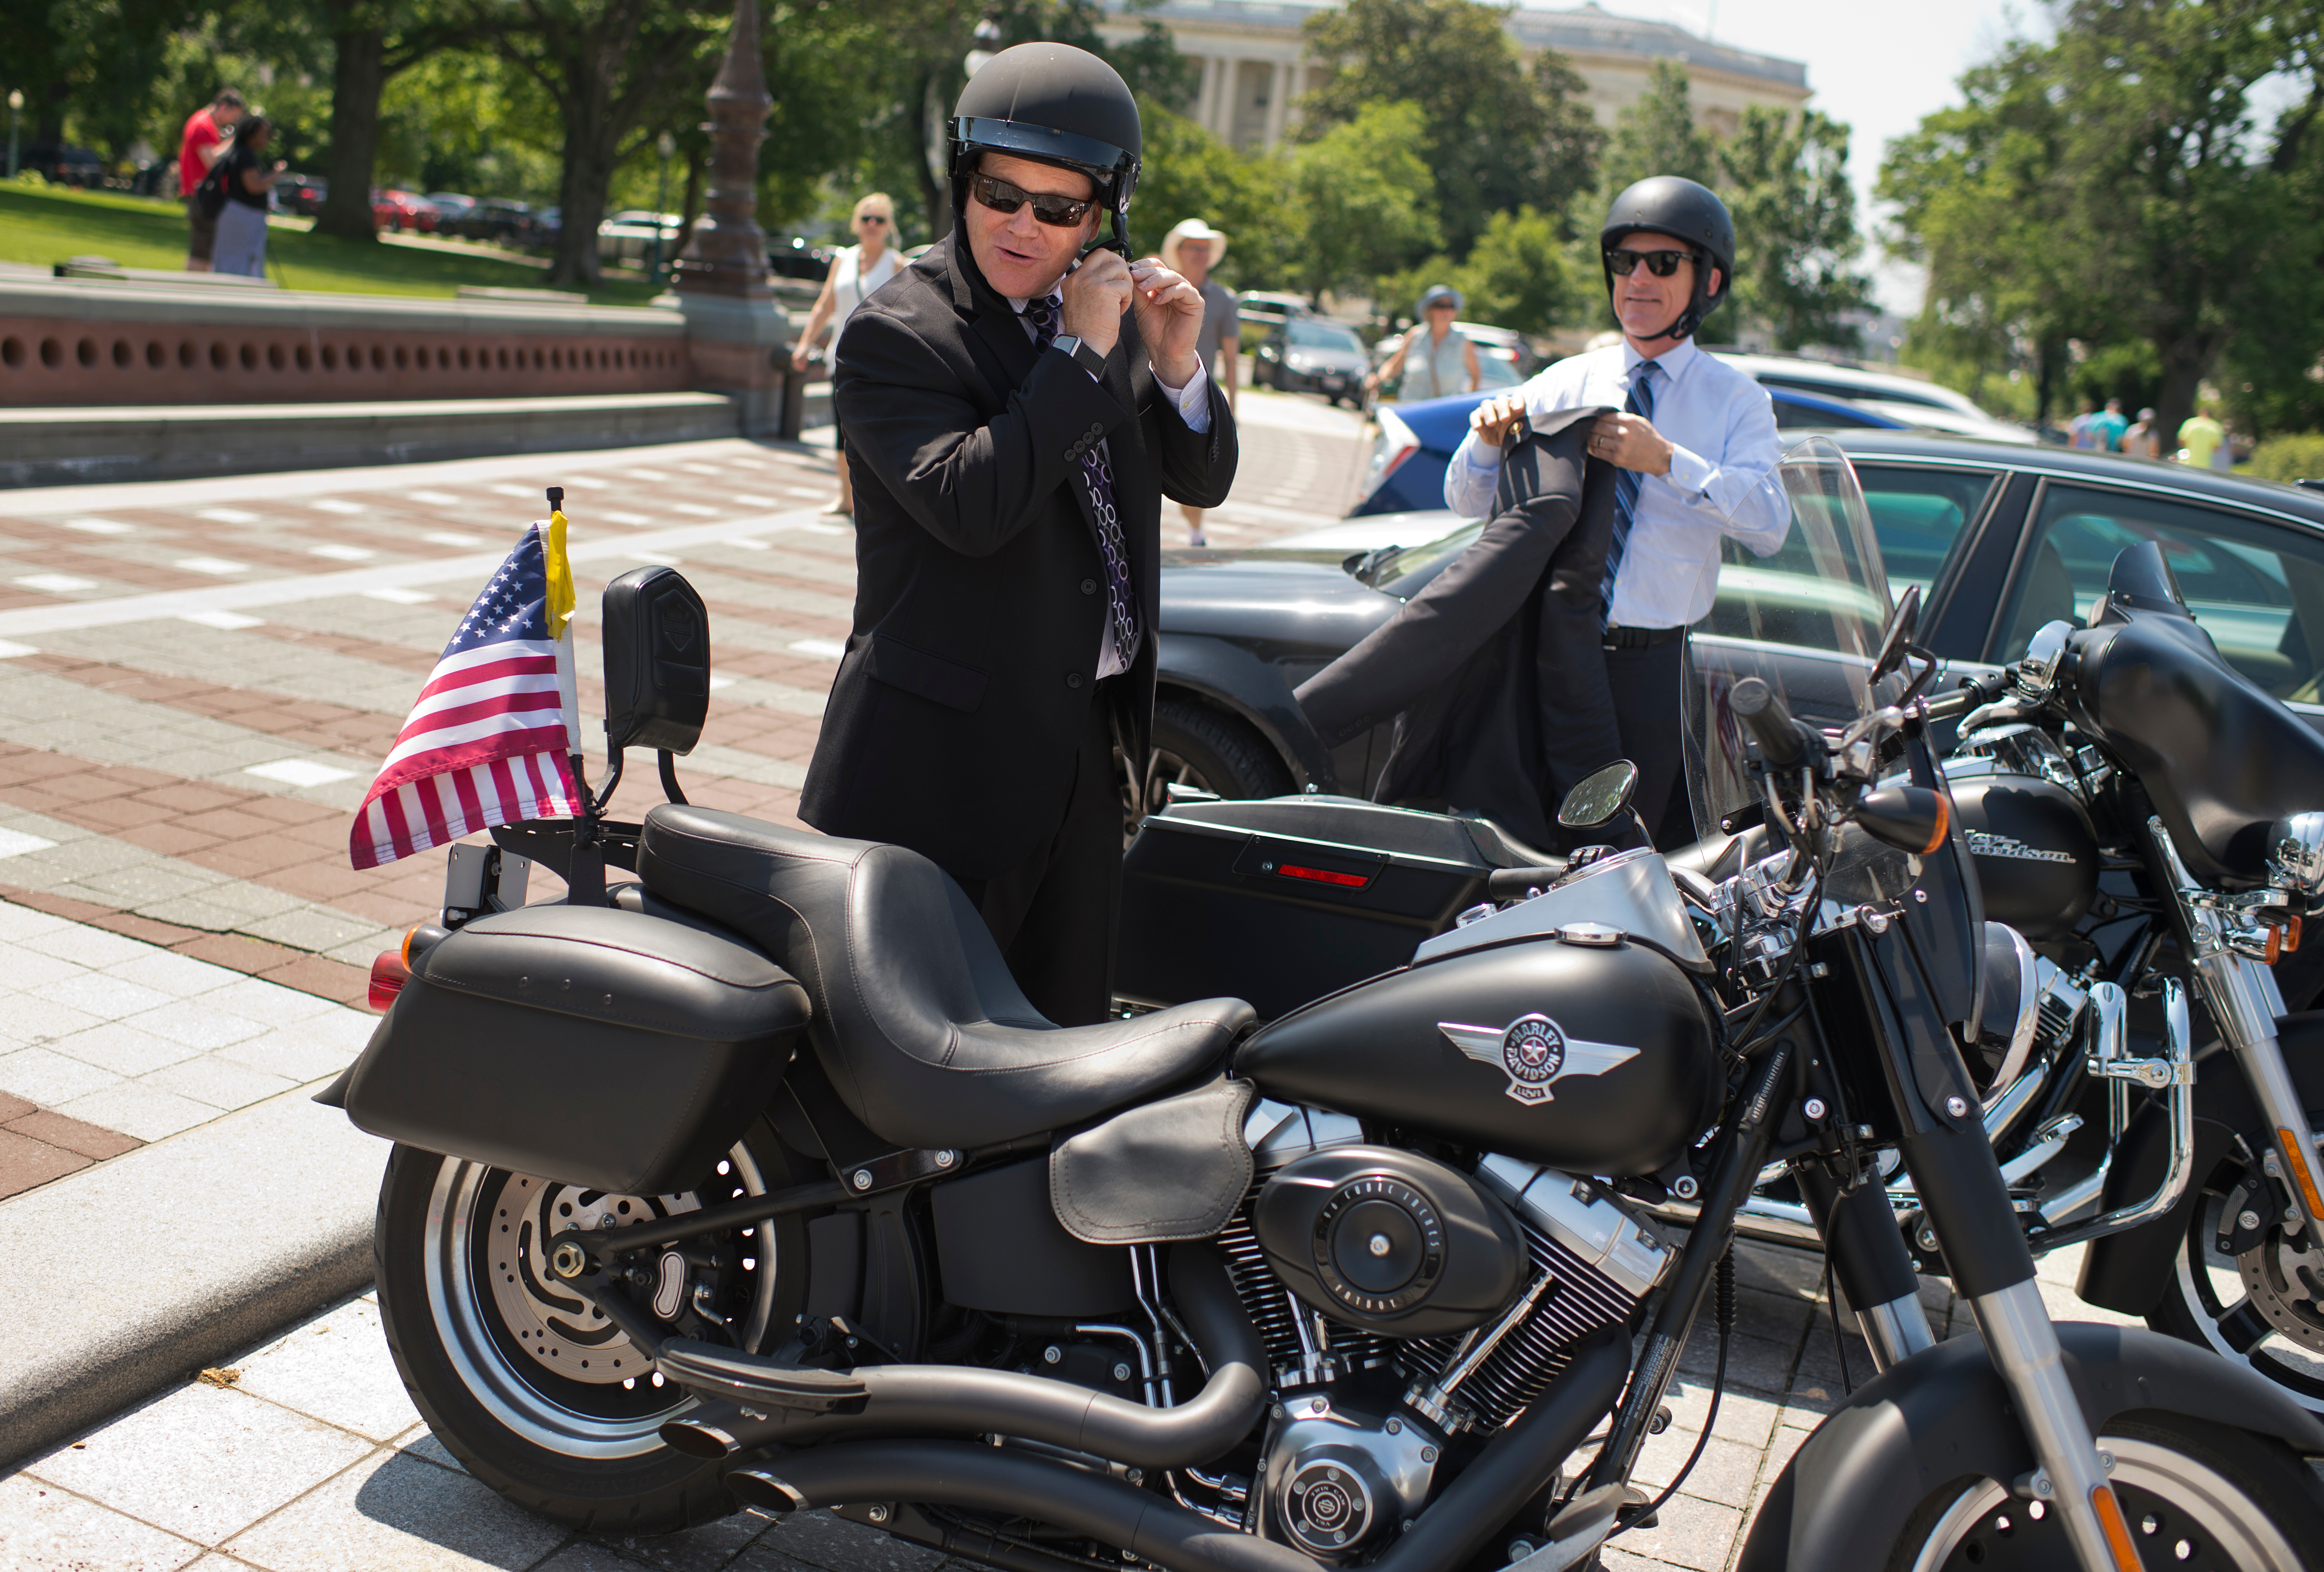 UNITED STATES - MAY 26: Reps. Reid Ribble, R-Wis., left, and Scott Rigell, R-Va., board their Harley-Davidson motorcycles on the East Front of the Capitol after the last votes in the House which begins the Memorial Day recess, May 26, 2016. (Photo By Tom Williams/CQ Roll Call)